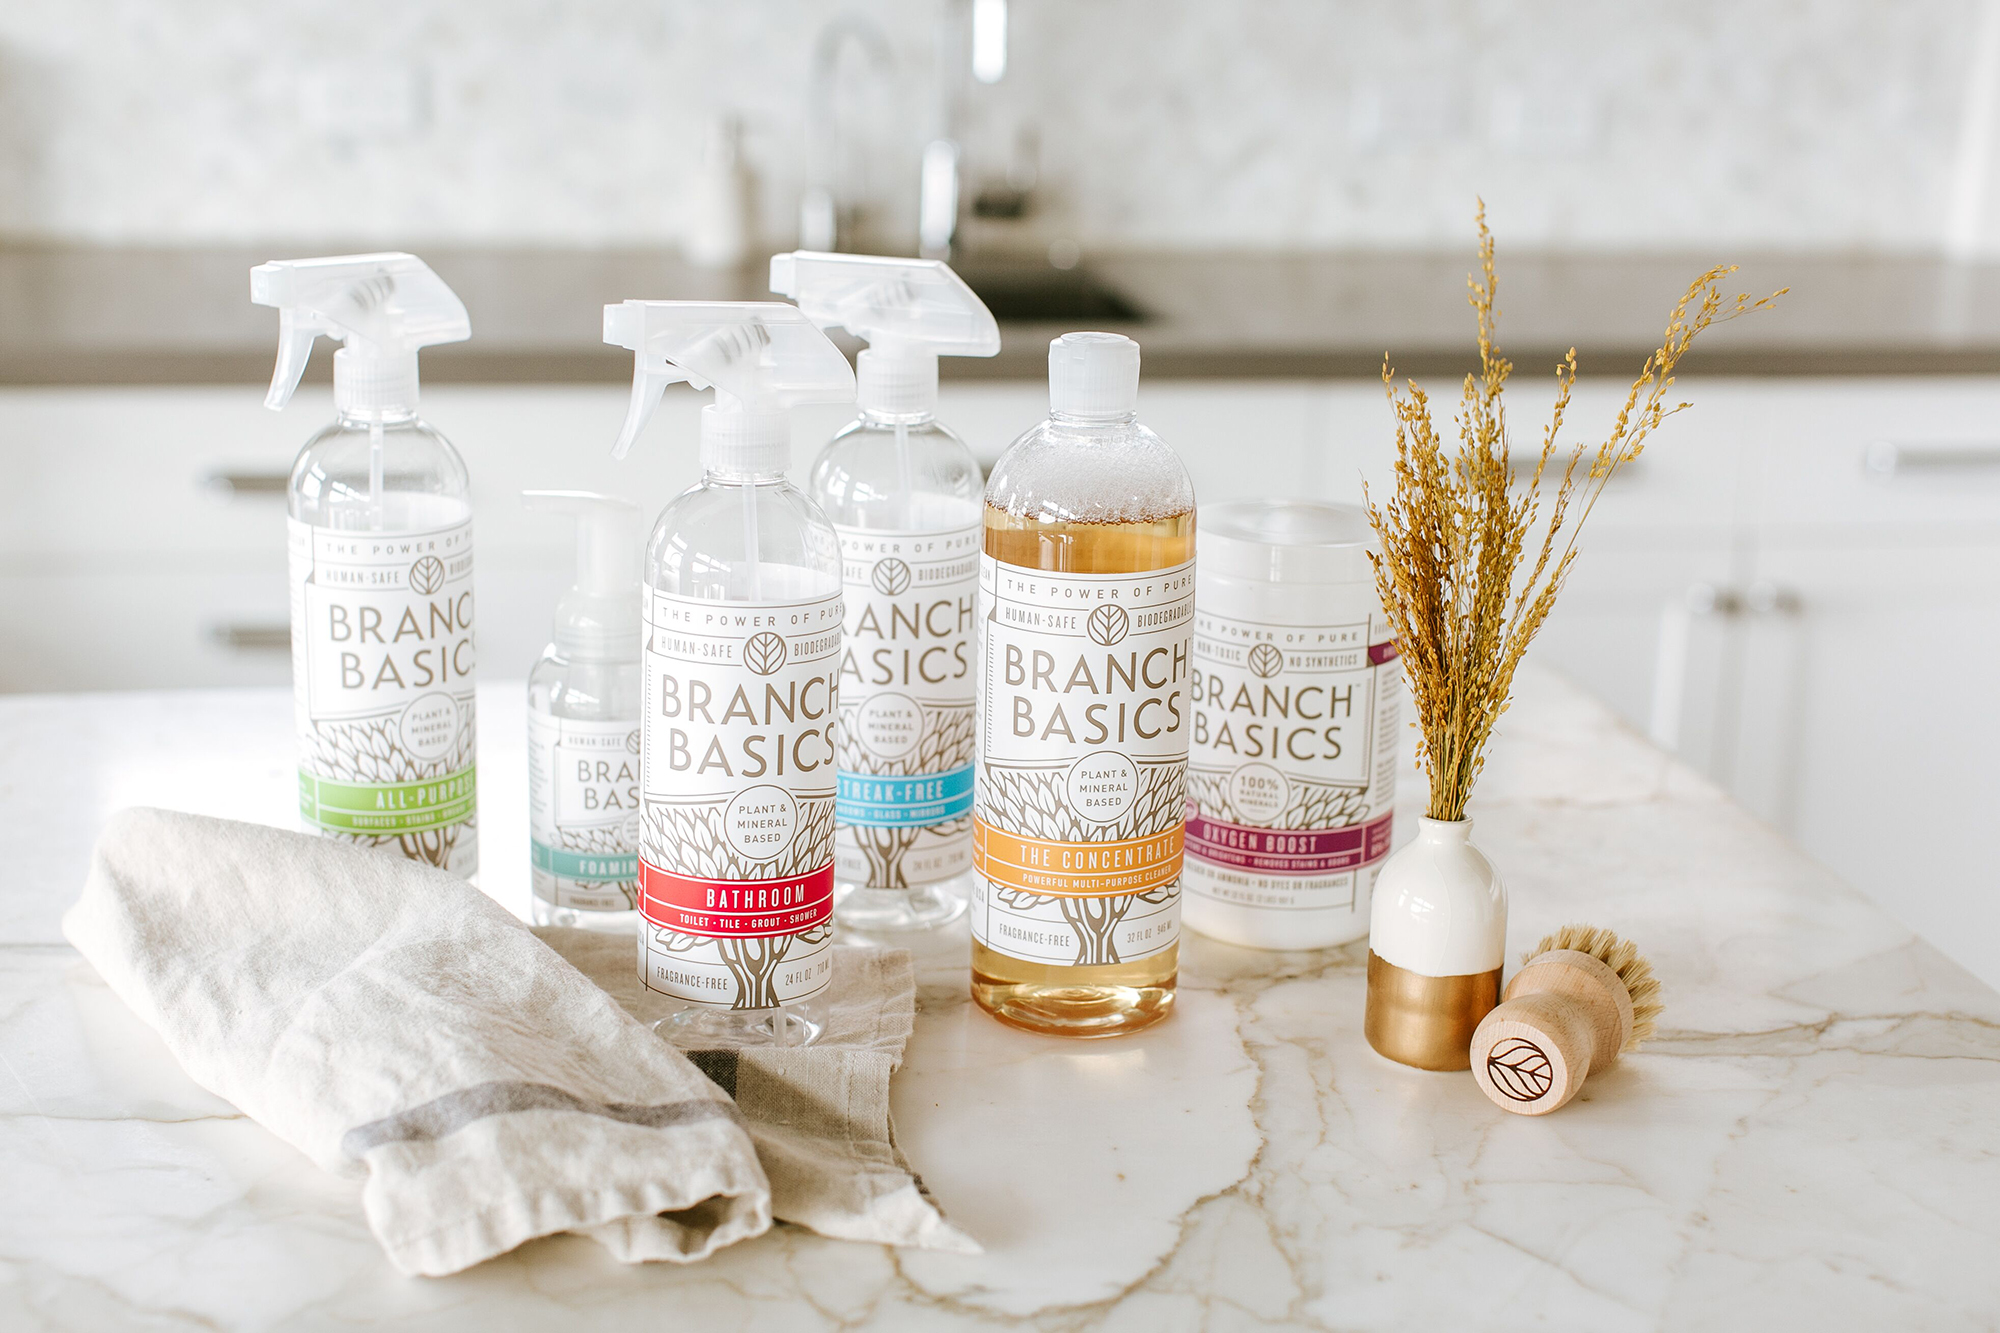 Branch Basics Cleaning Products